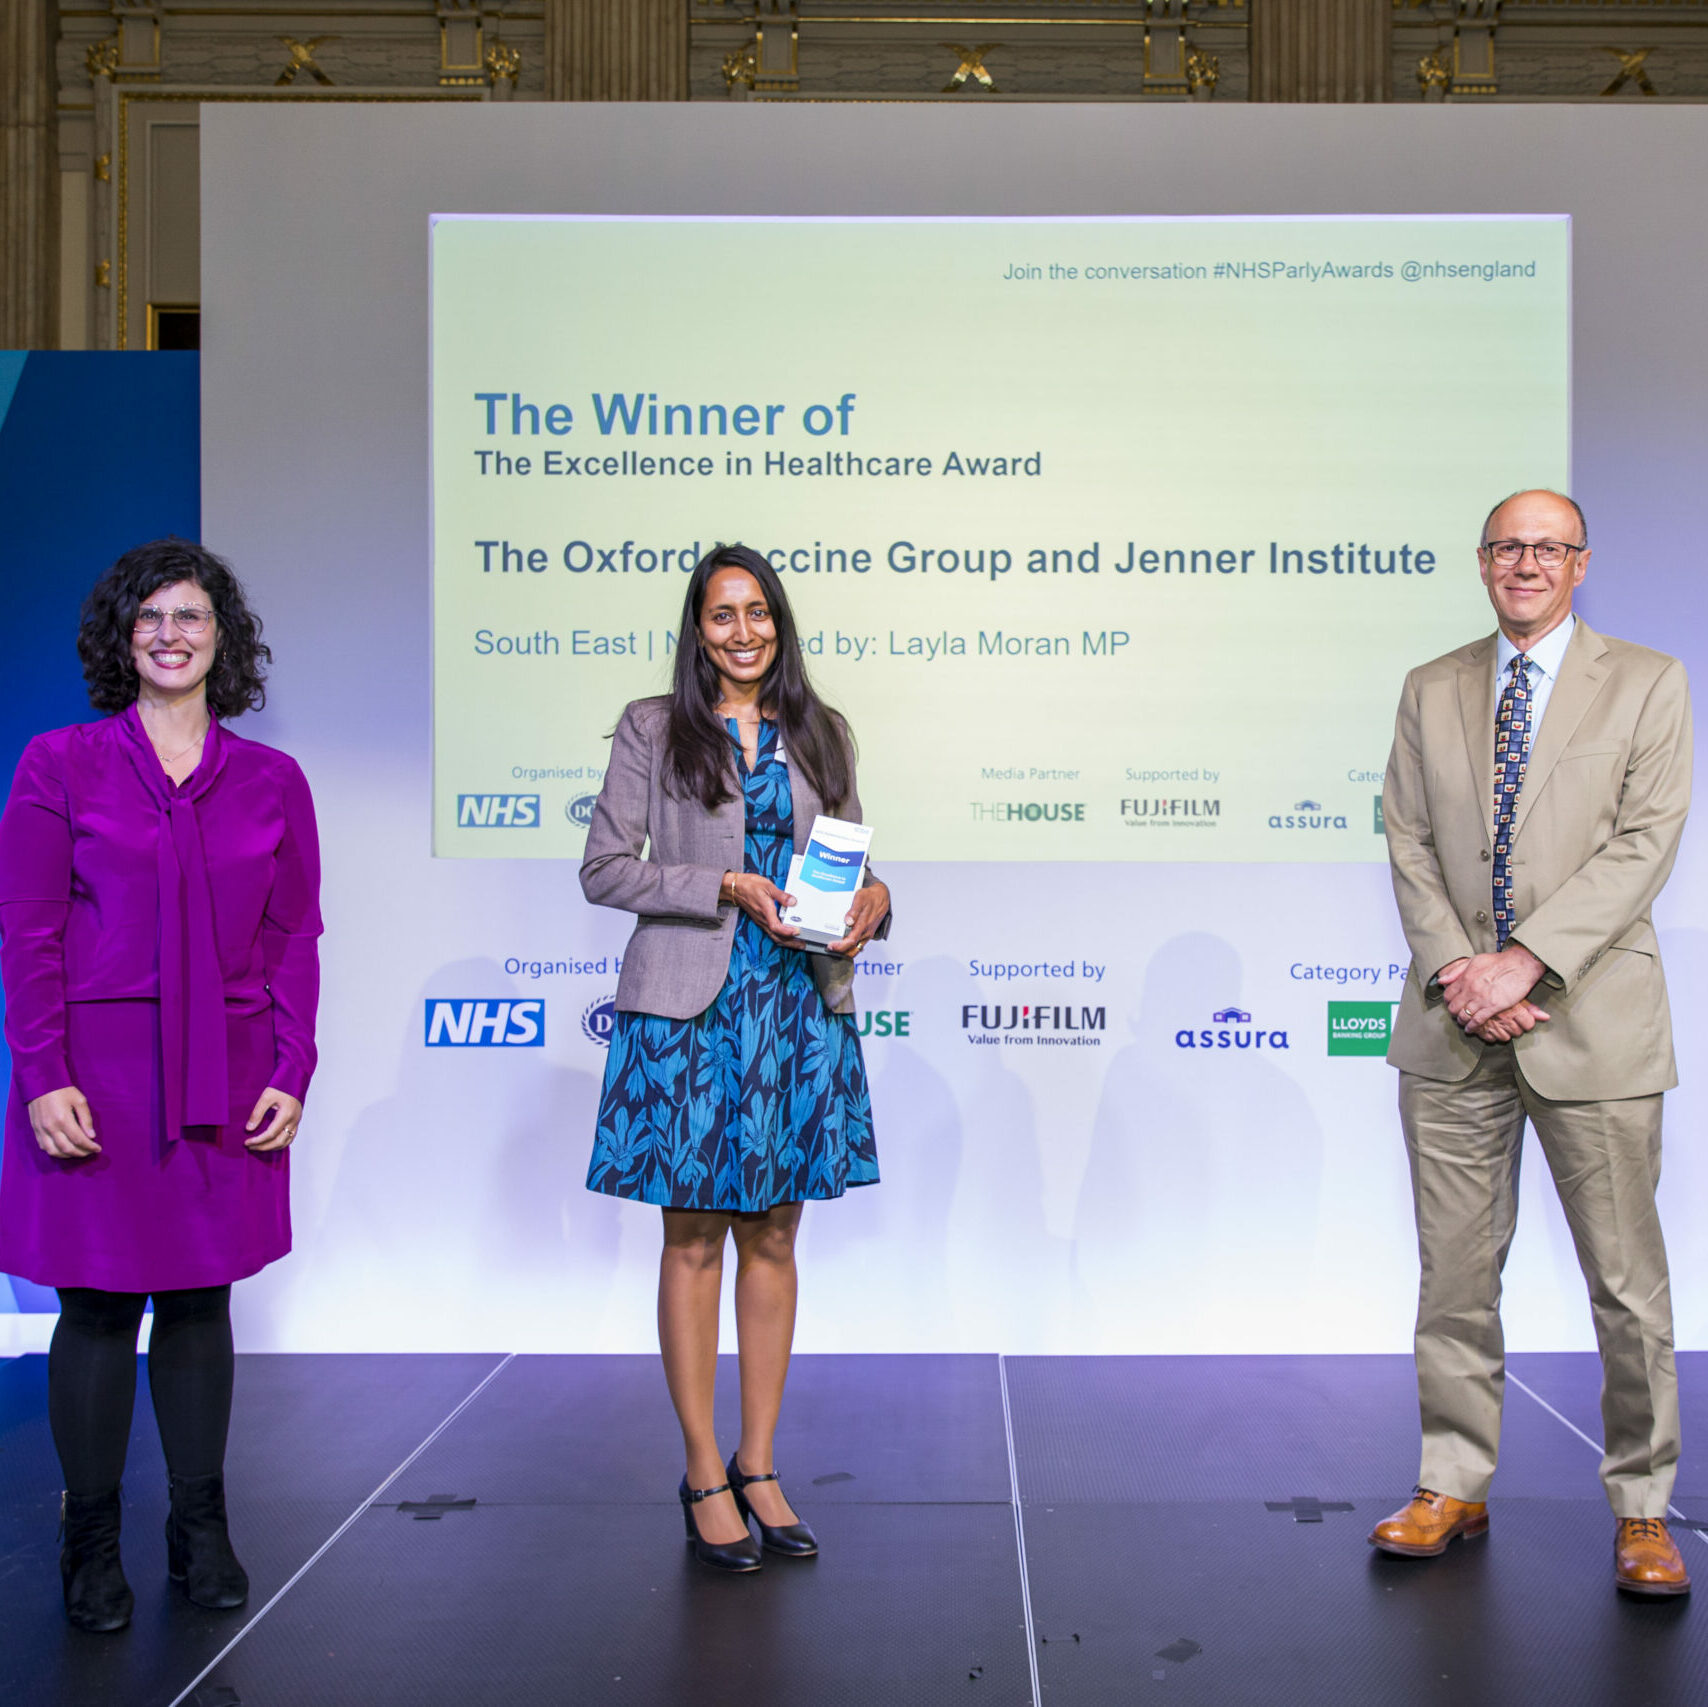 Three people are stood on the stage with a member of The Oxford Vaccine Group and the Jenner Institute receiving their Parliamentary NHS Award